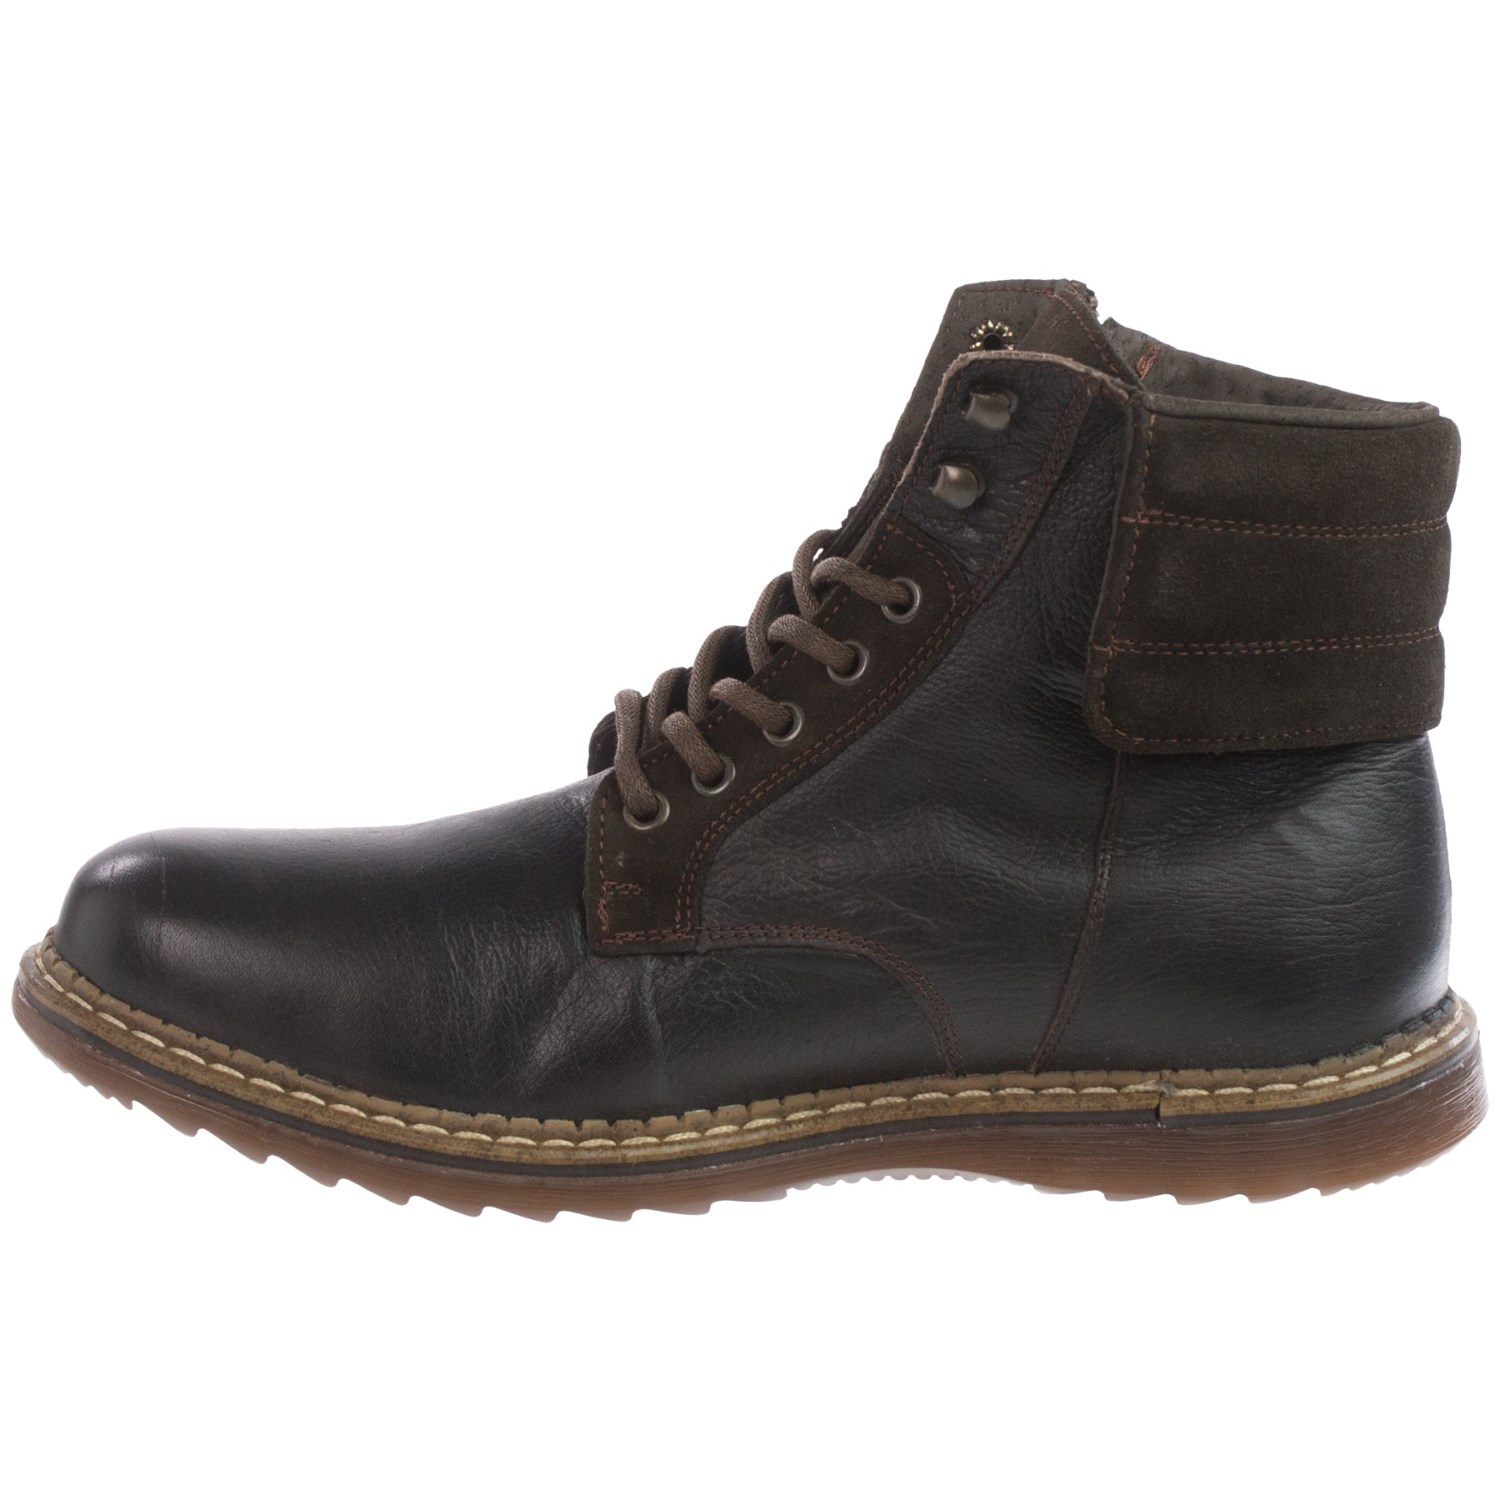 gbx trammel cuff boots for save 64